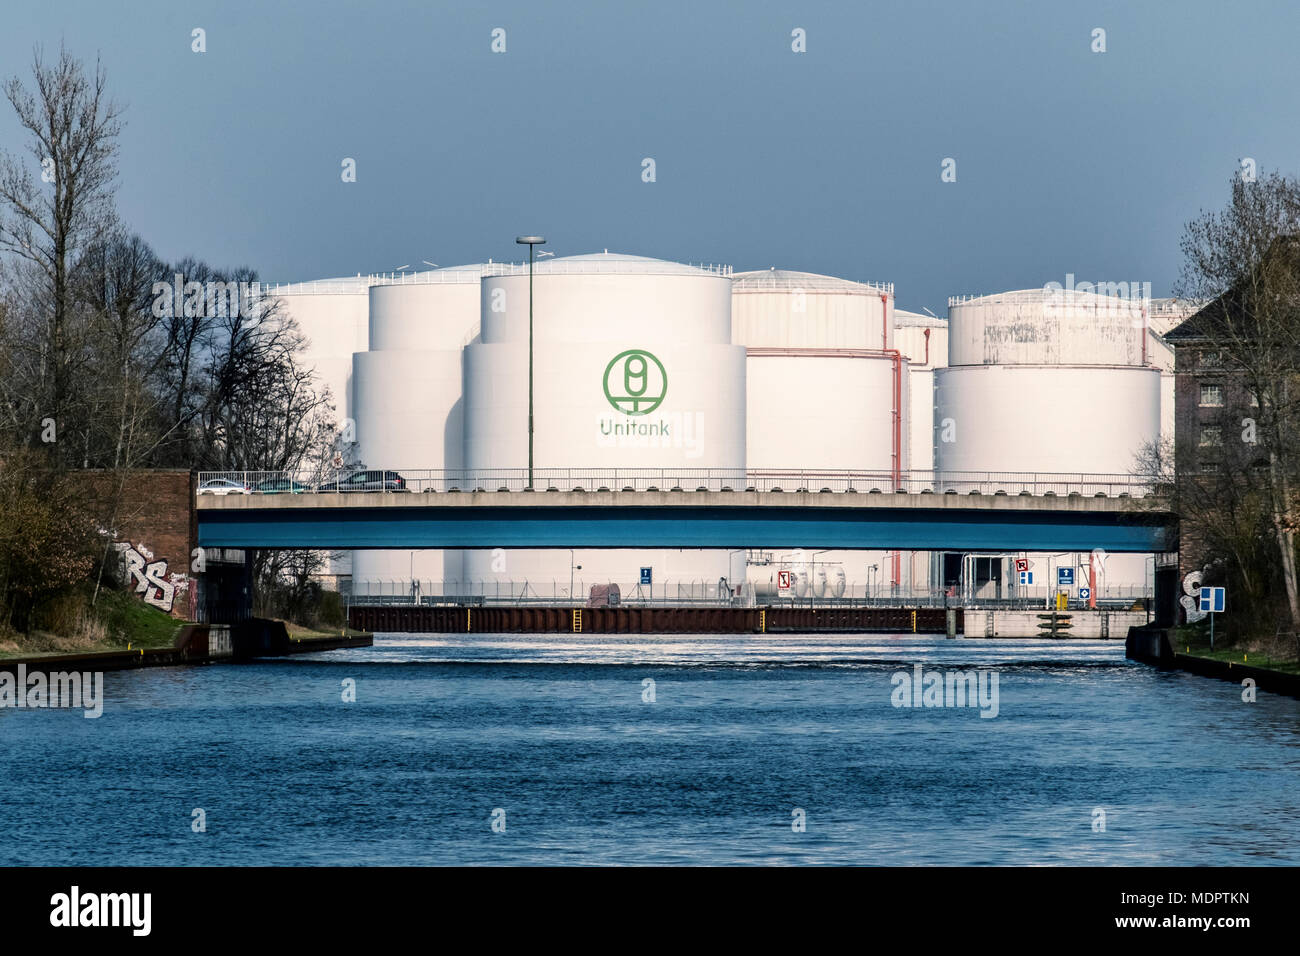 Oil Storage Tank Farm Stock Photos & Oil Storage Tank Farm